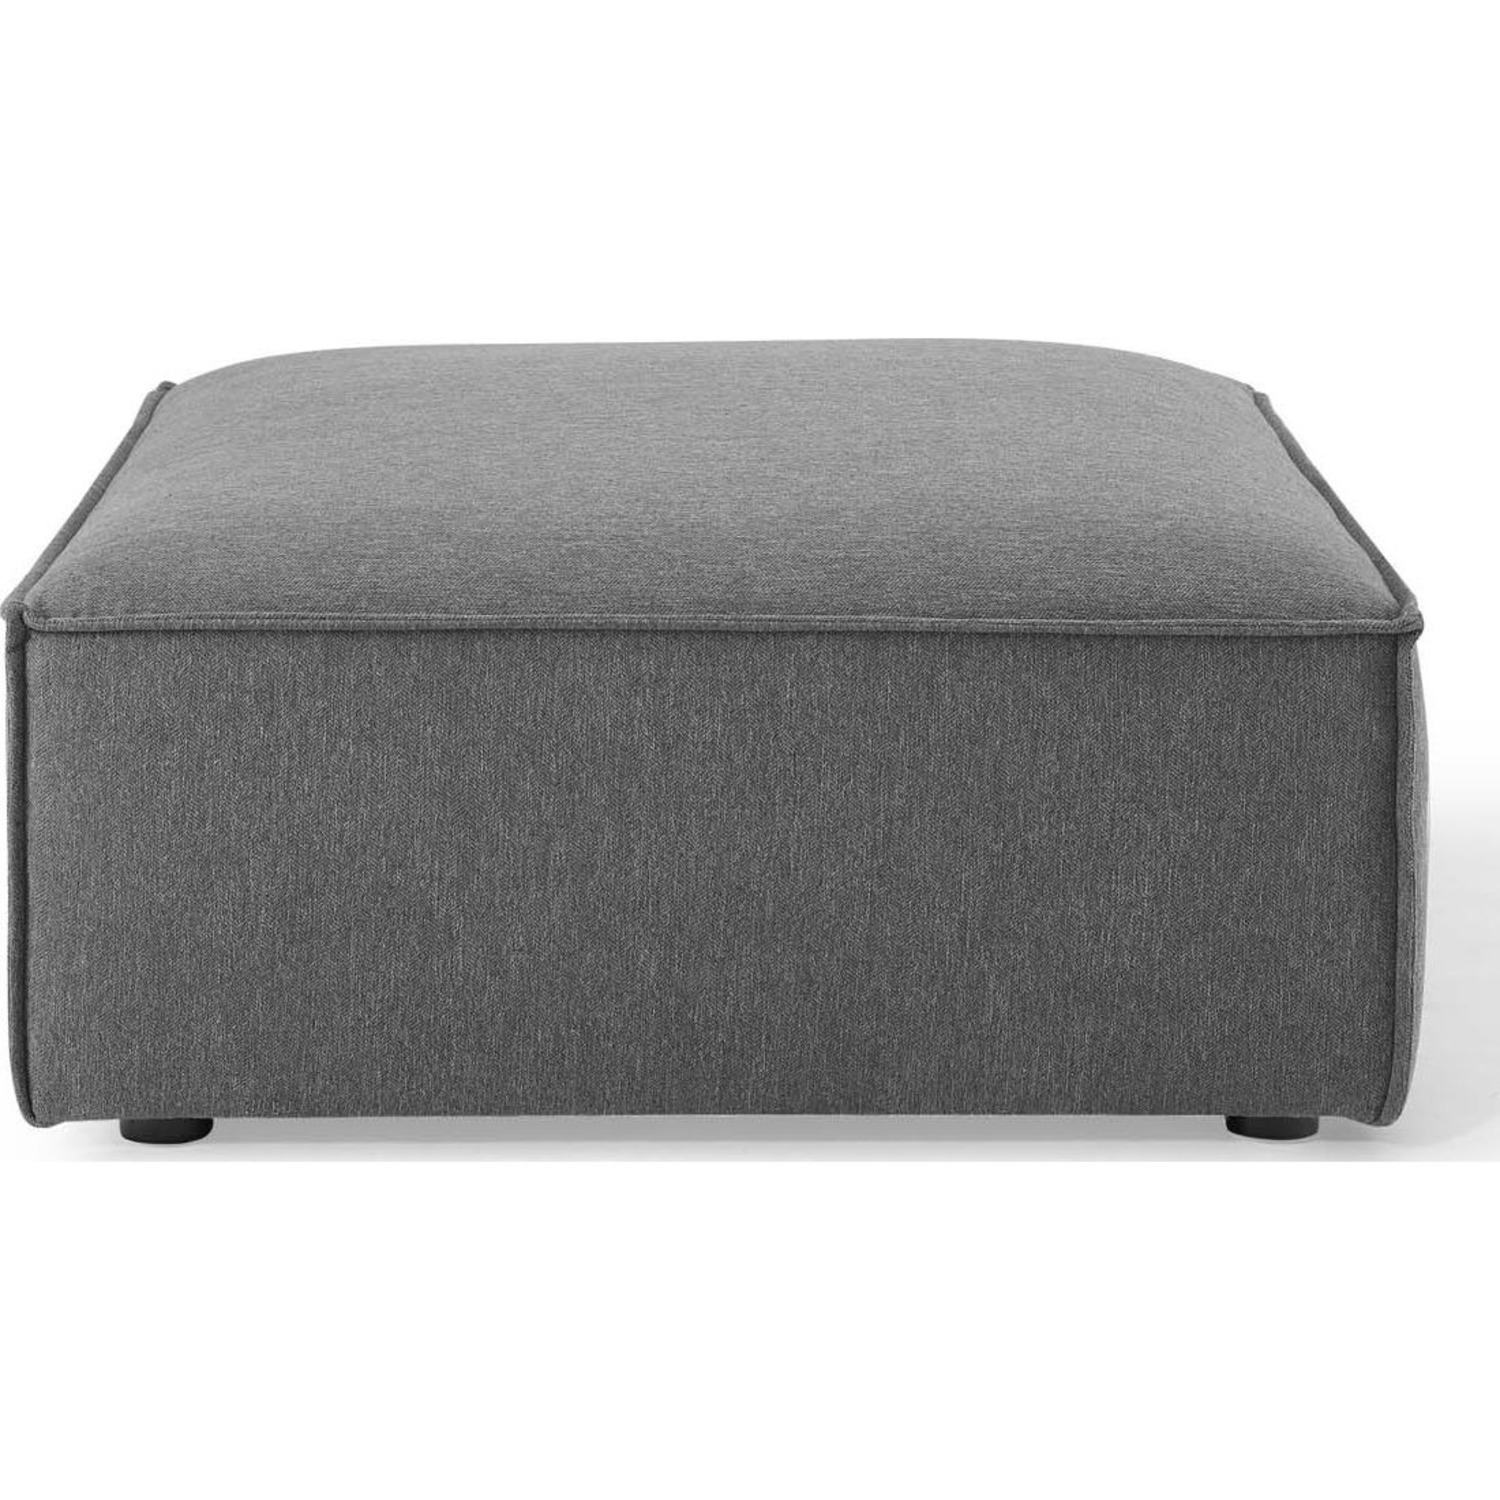 5-Piece Sectional Sofa In Charcoal Fabric - image-8